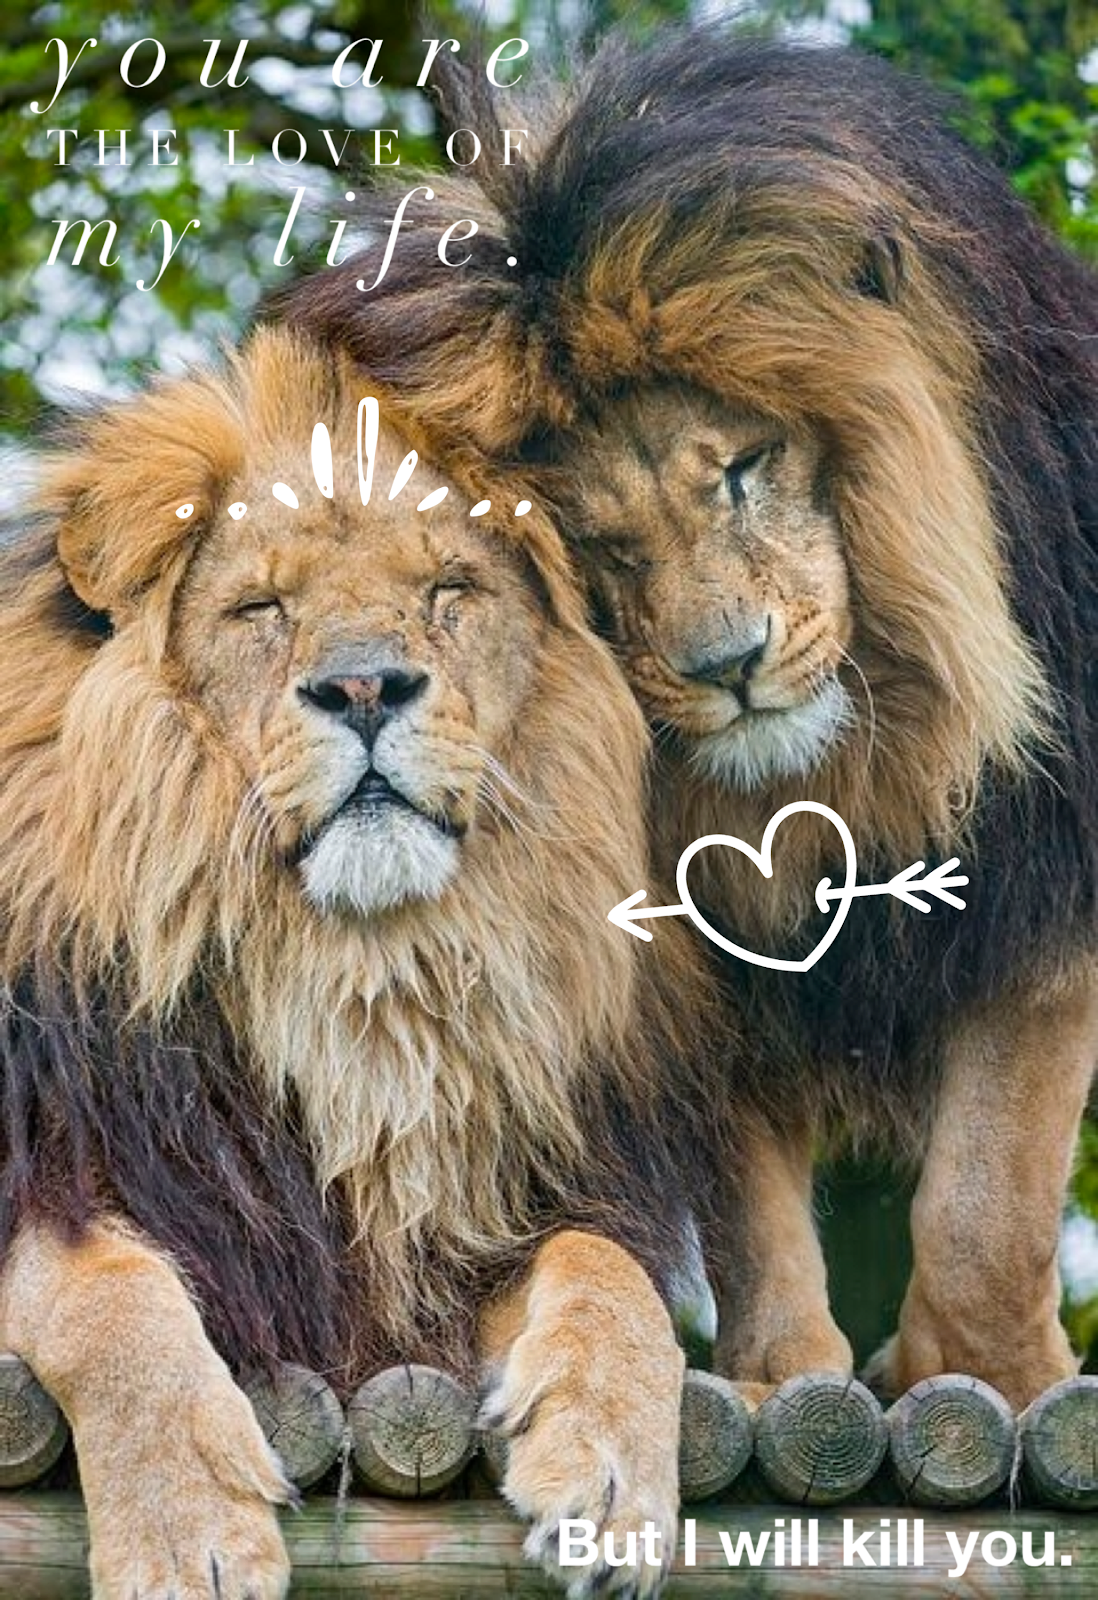 The Leo love is real. (image credit: Kelsey Skrinde)